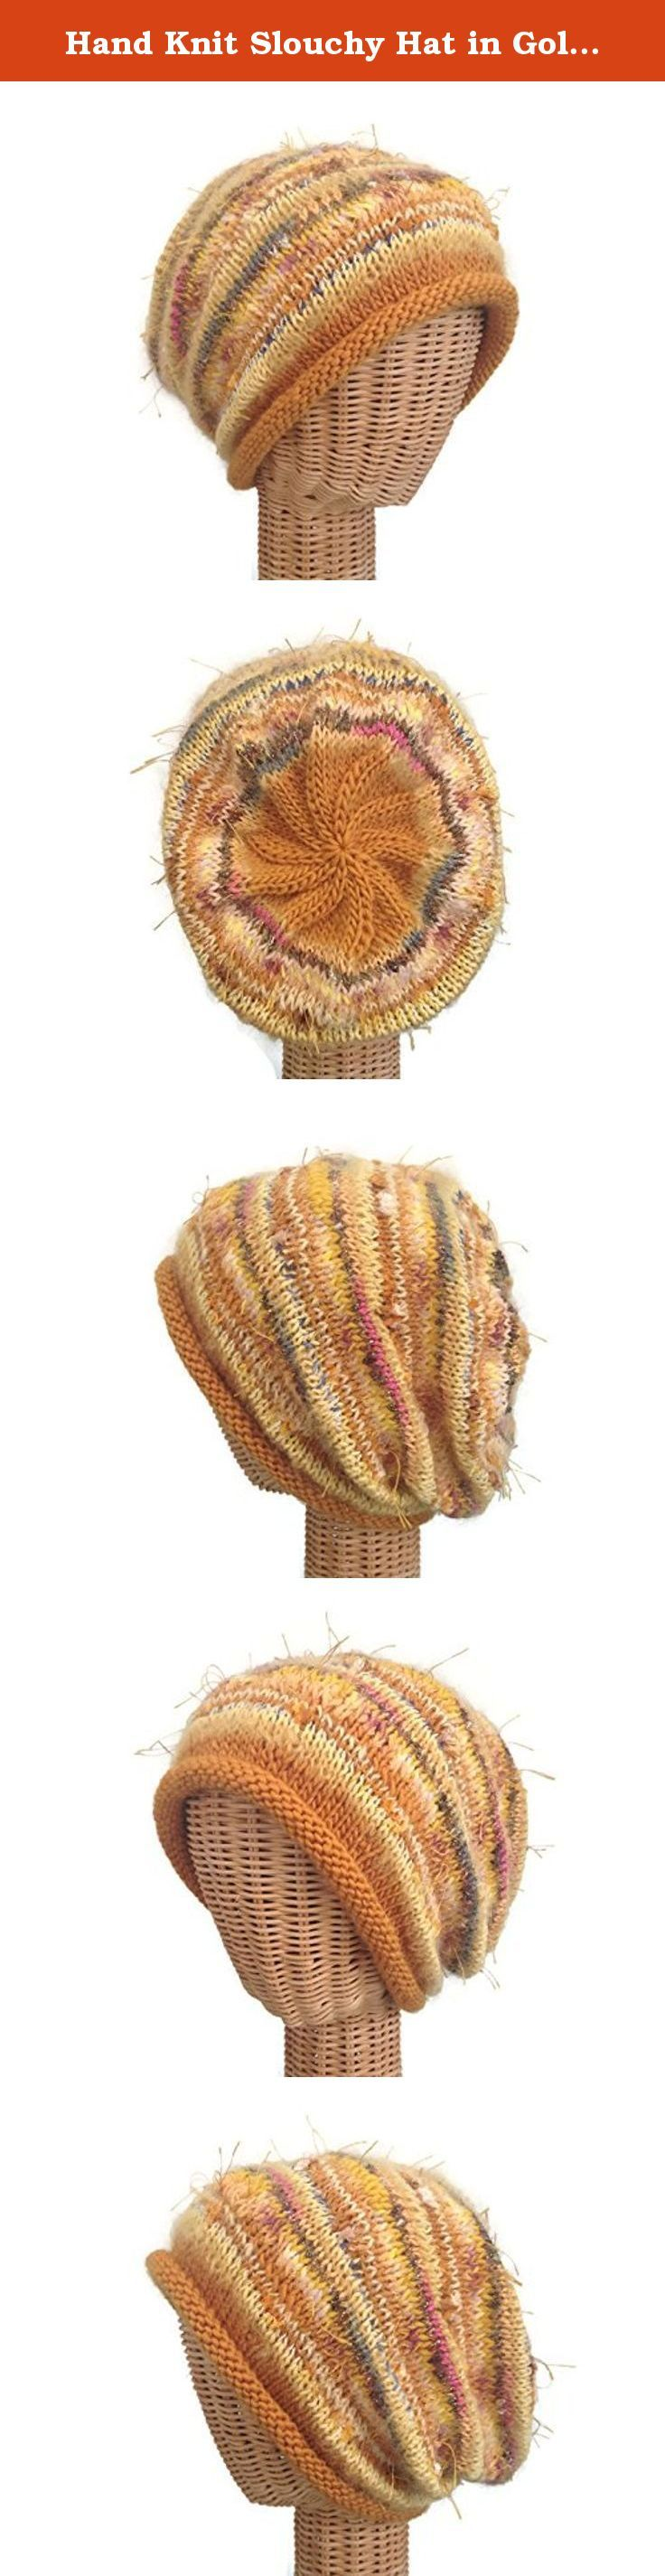 "Hand Knit Slouchy Hat in Gold Wool. This gorgeous gold hat is a Women's medium with plenty of ""give."" It is knitted combination of various novelty yarns and wool. It measures approximately 22 inches around and 11-inches from its rolled brim to the top."